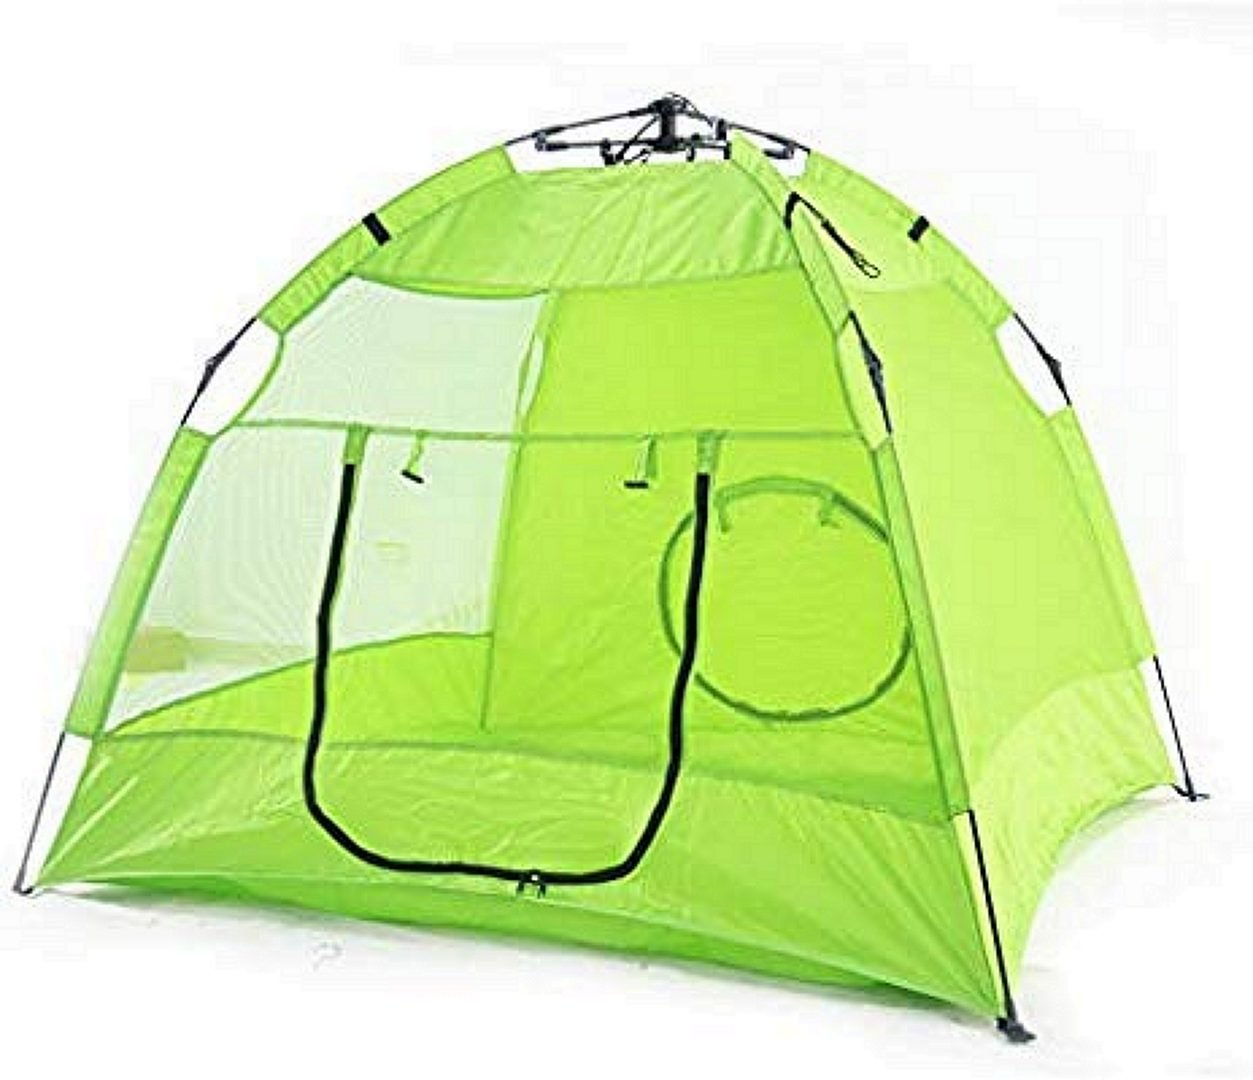 Porayhut Portable Outdoor Tent for Dogs